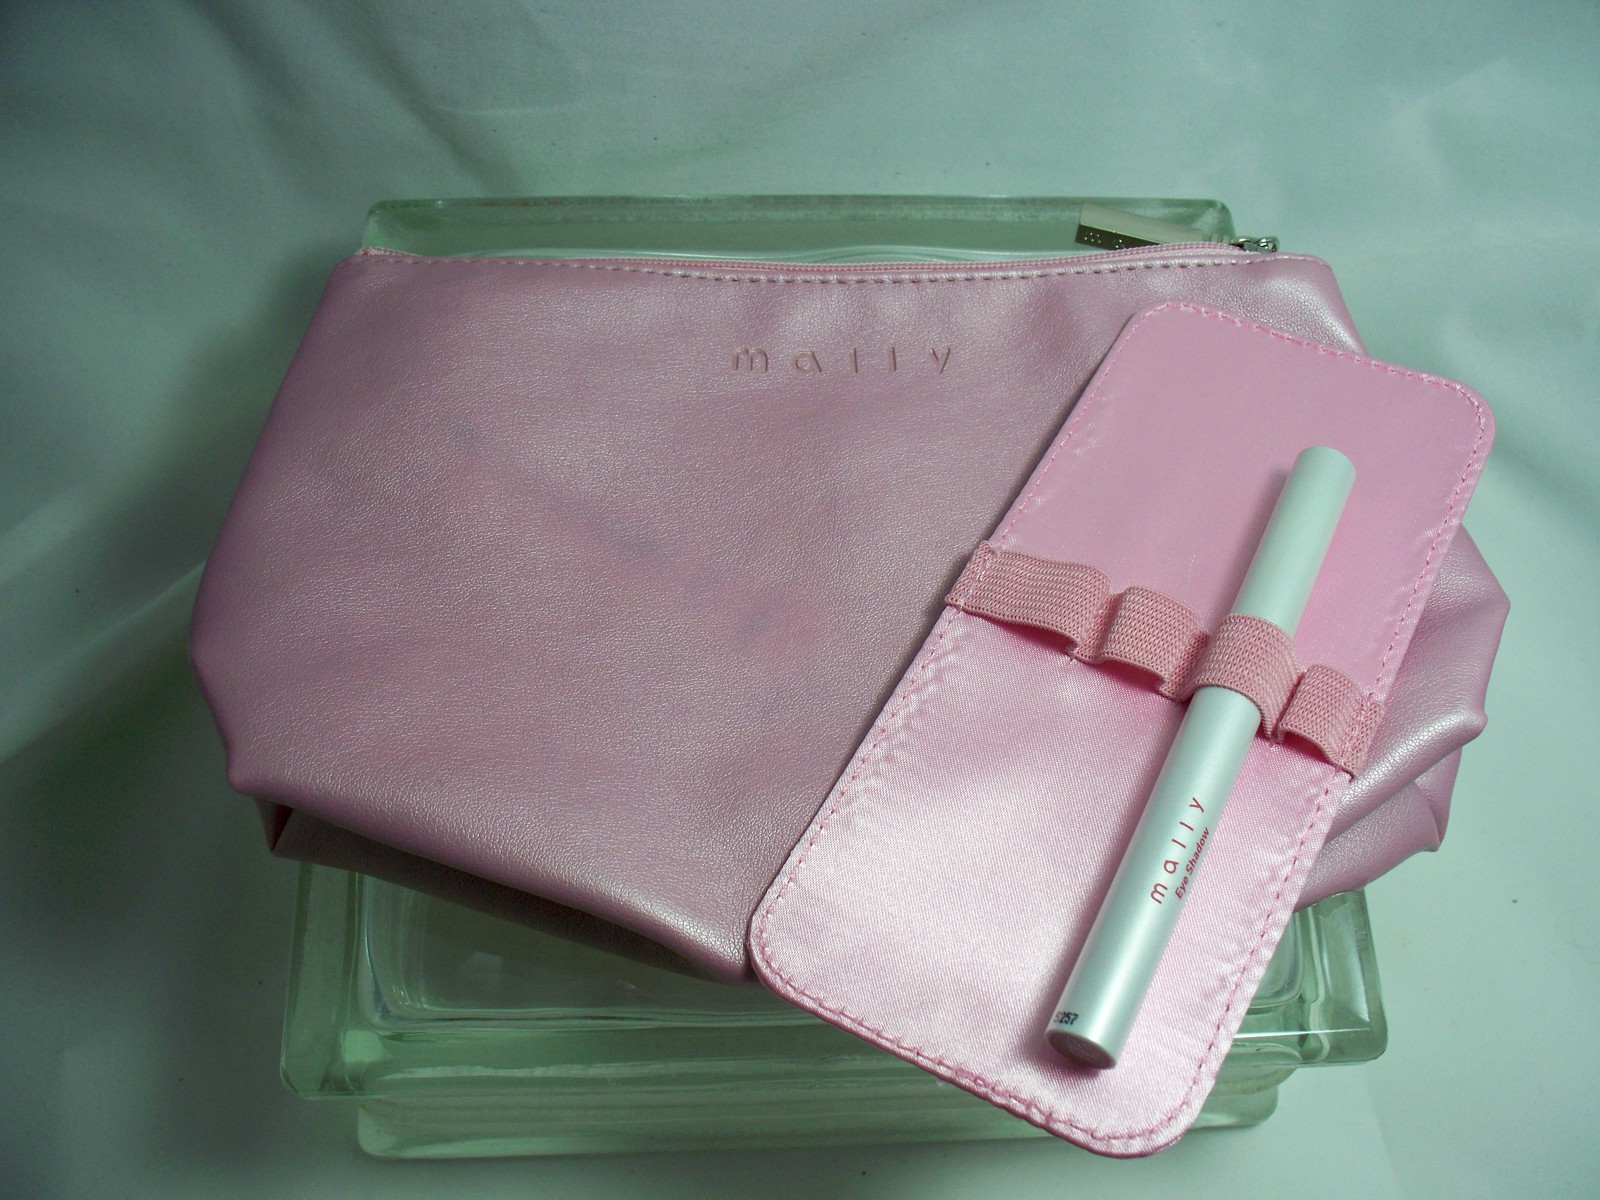 Primary image for Mally Beauty Eyeshadow Stick Copper Rose and Mally Cosmetic Bag w/ holder